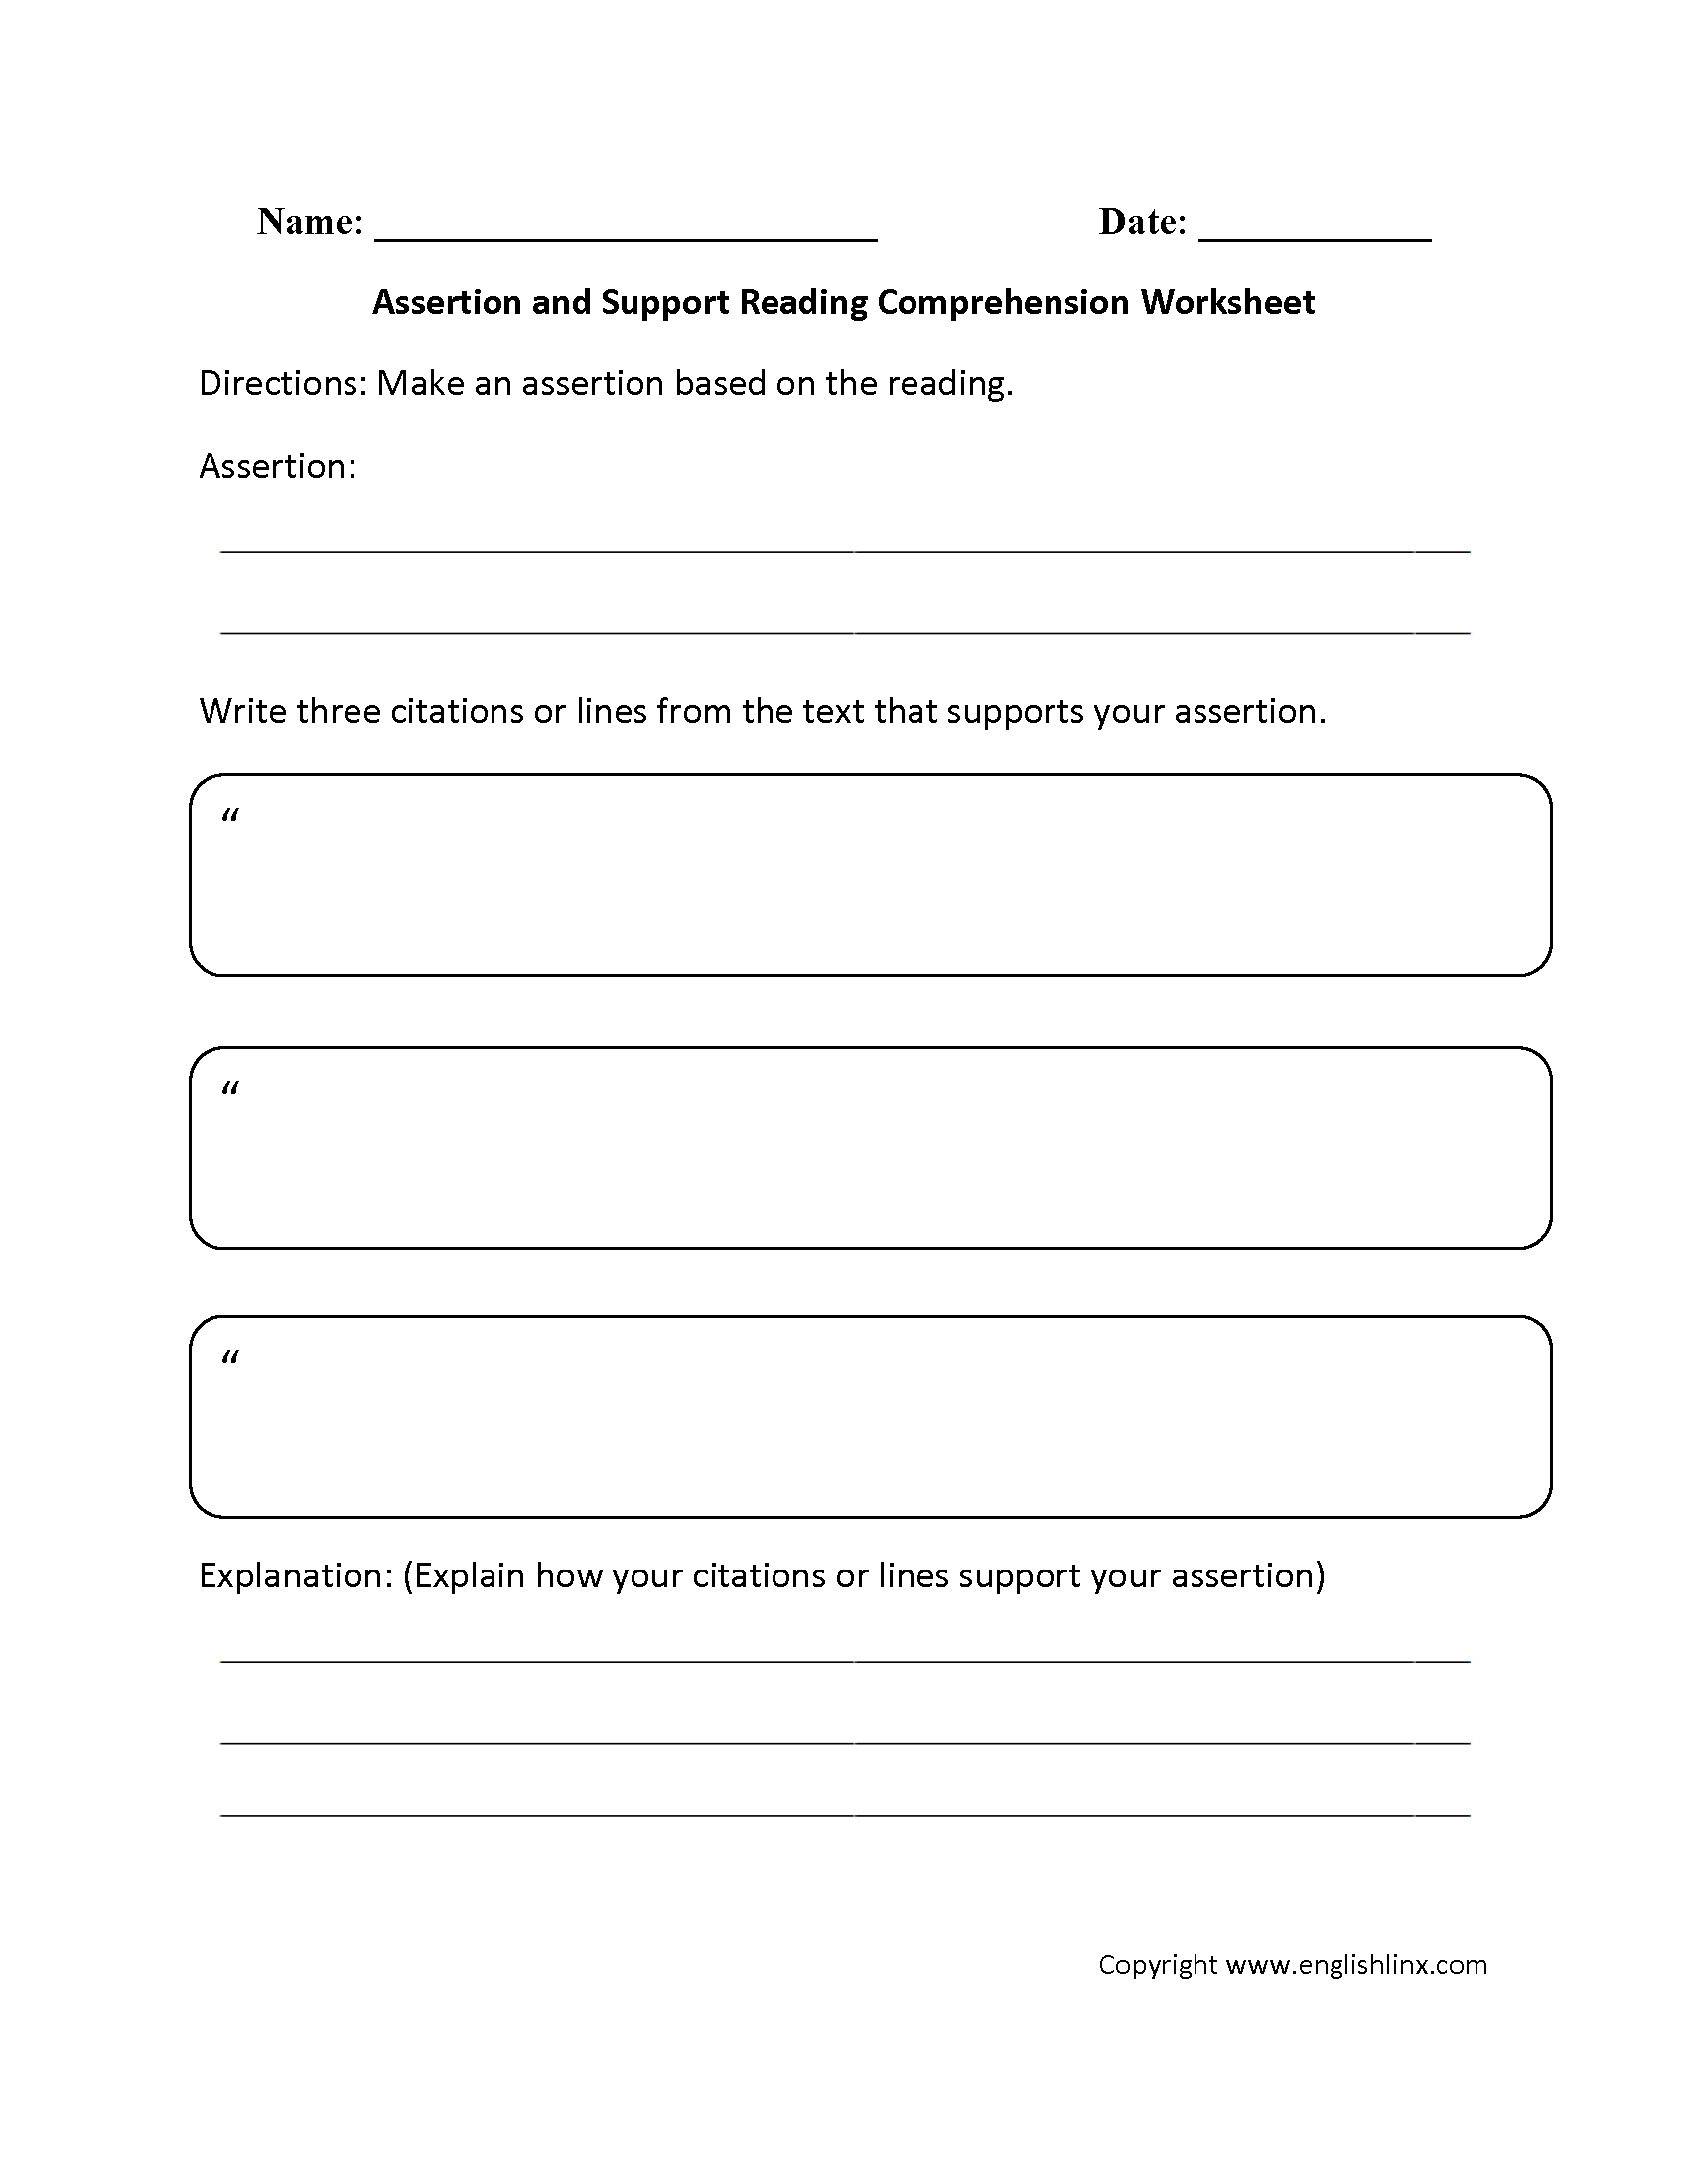 Reading Comprehension Worksheets English